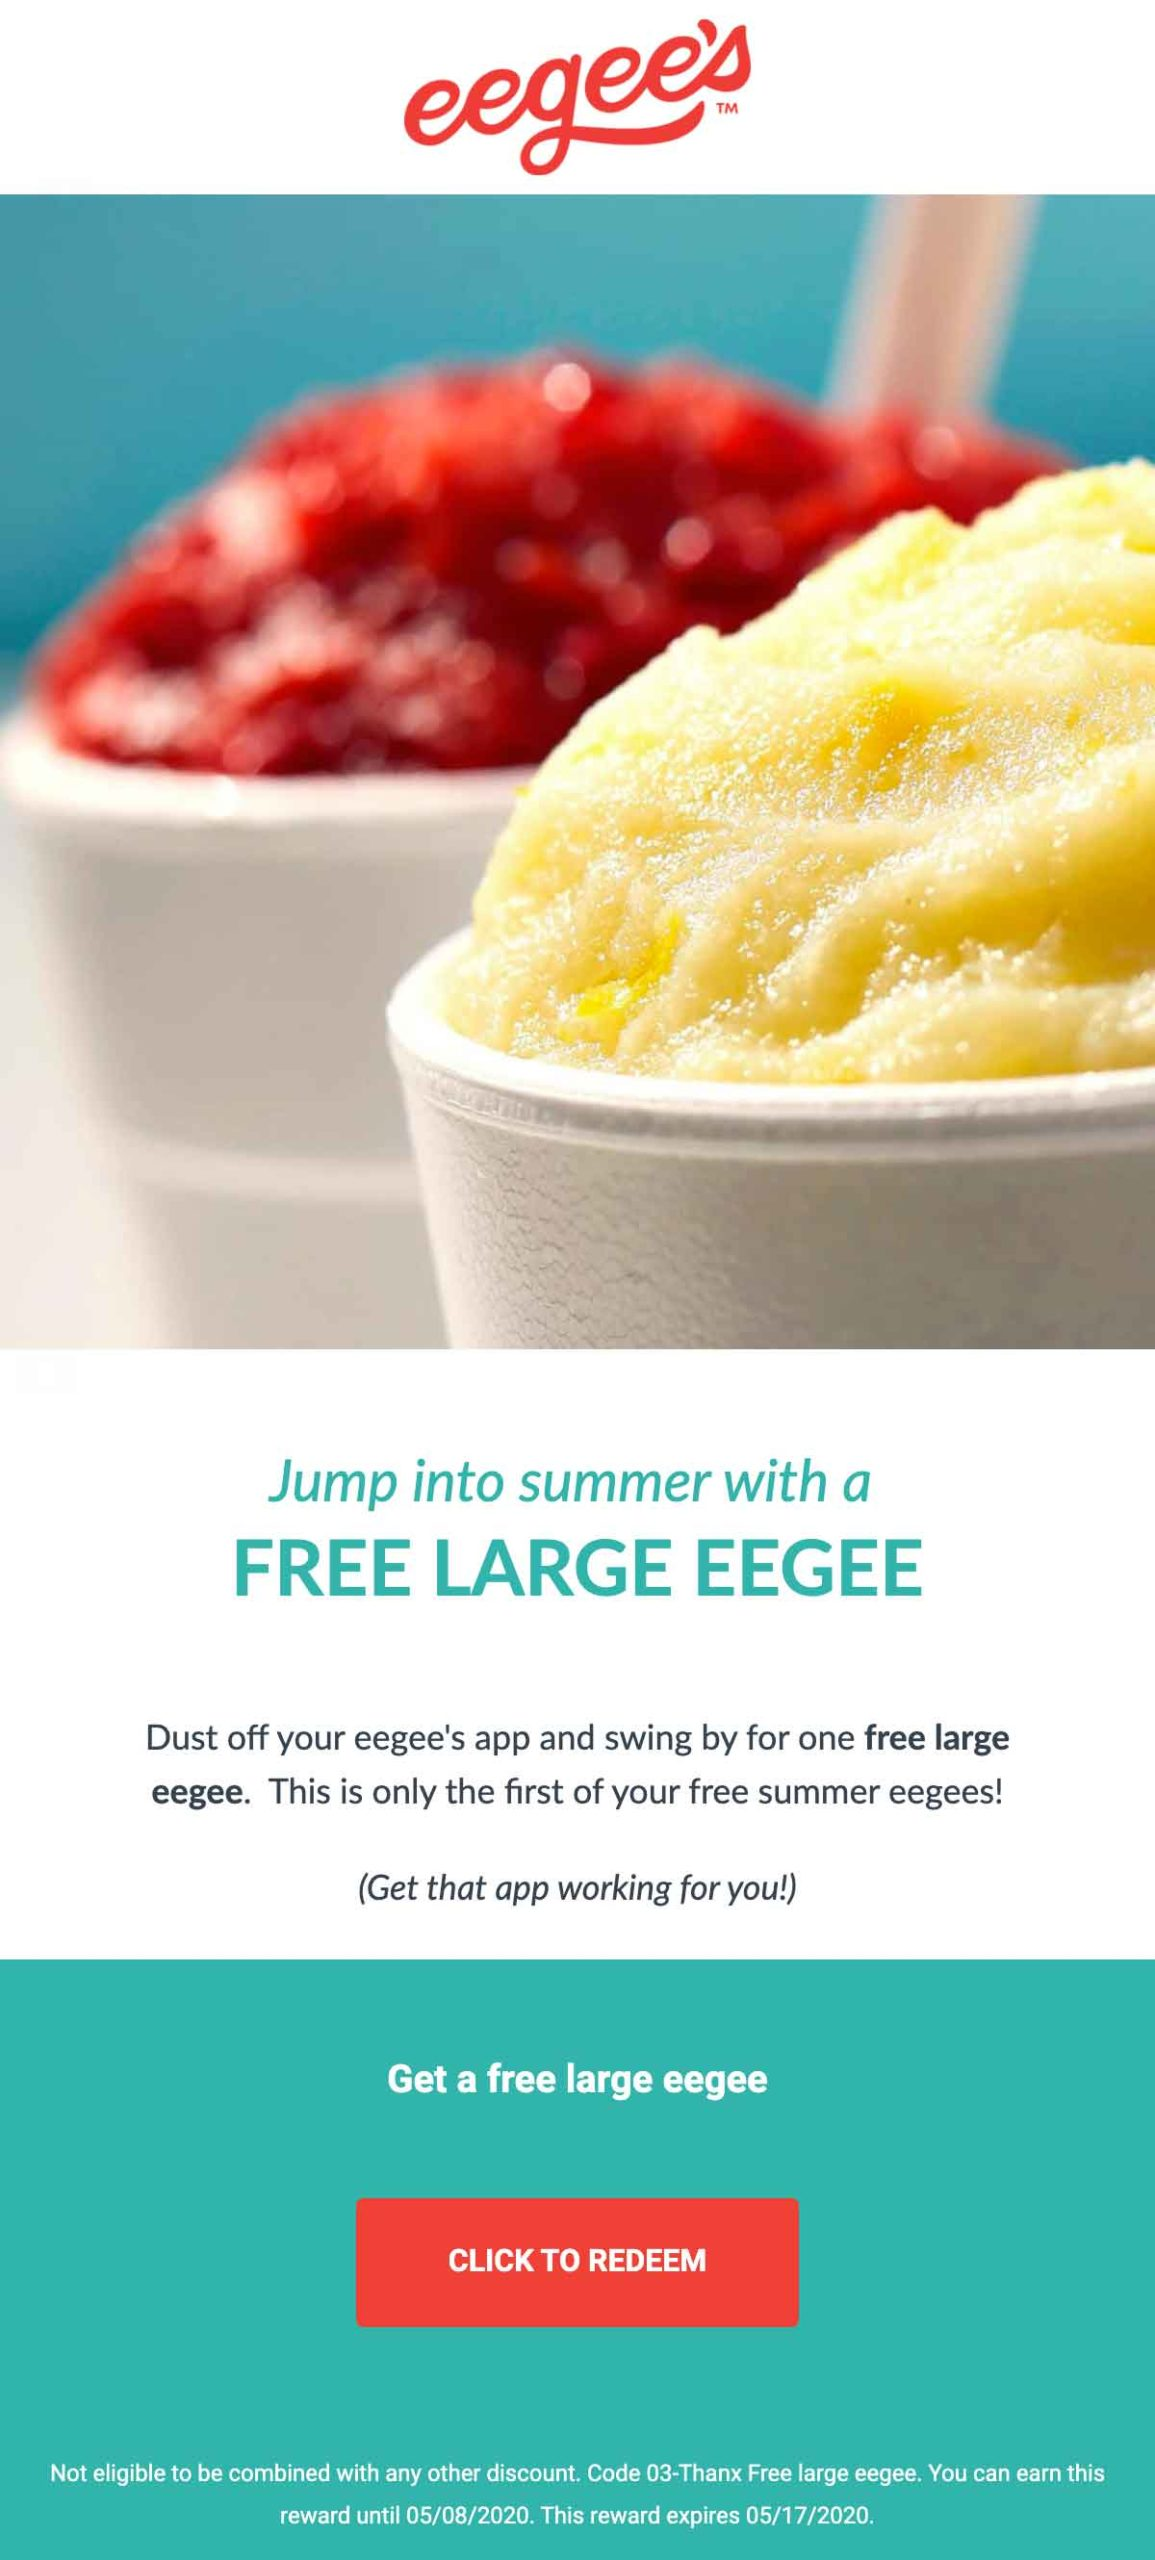 Eegee's: Free Large Eegee Email